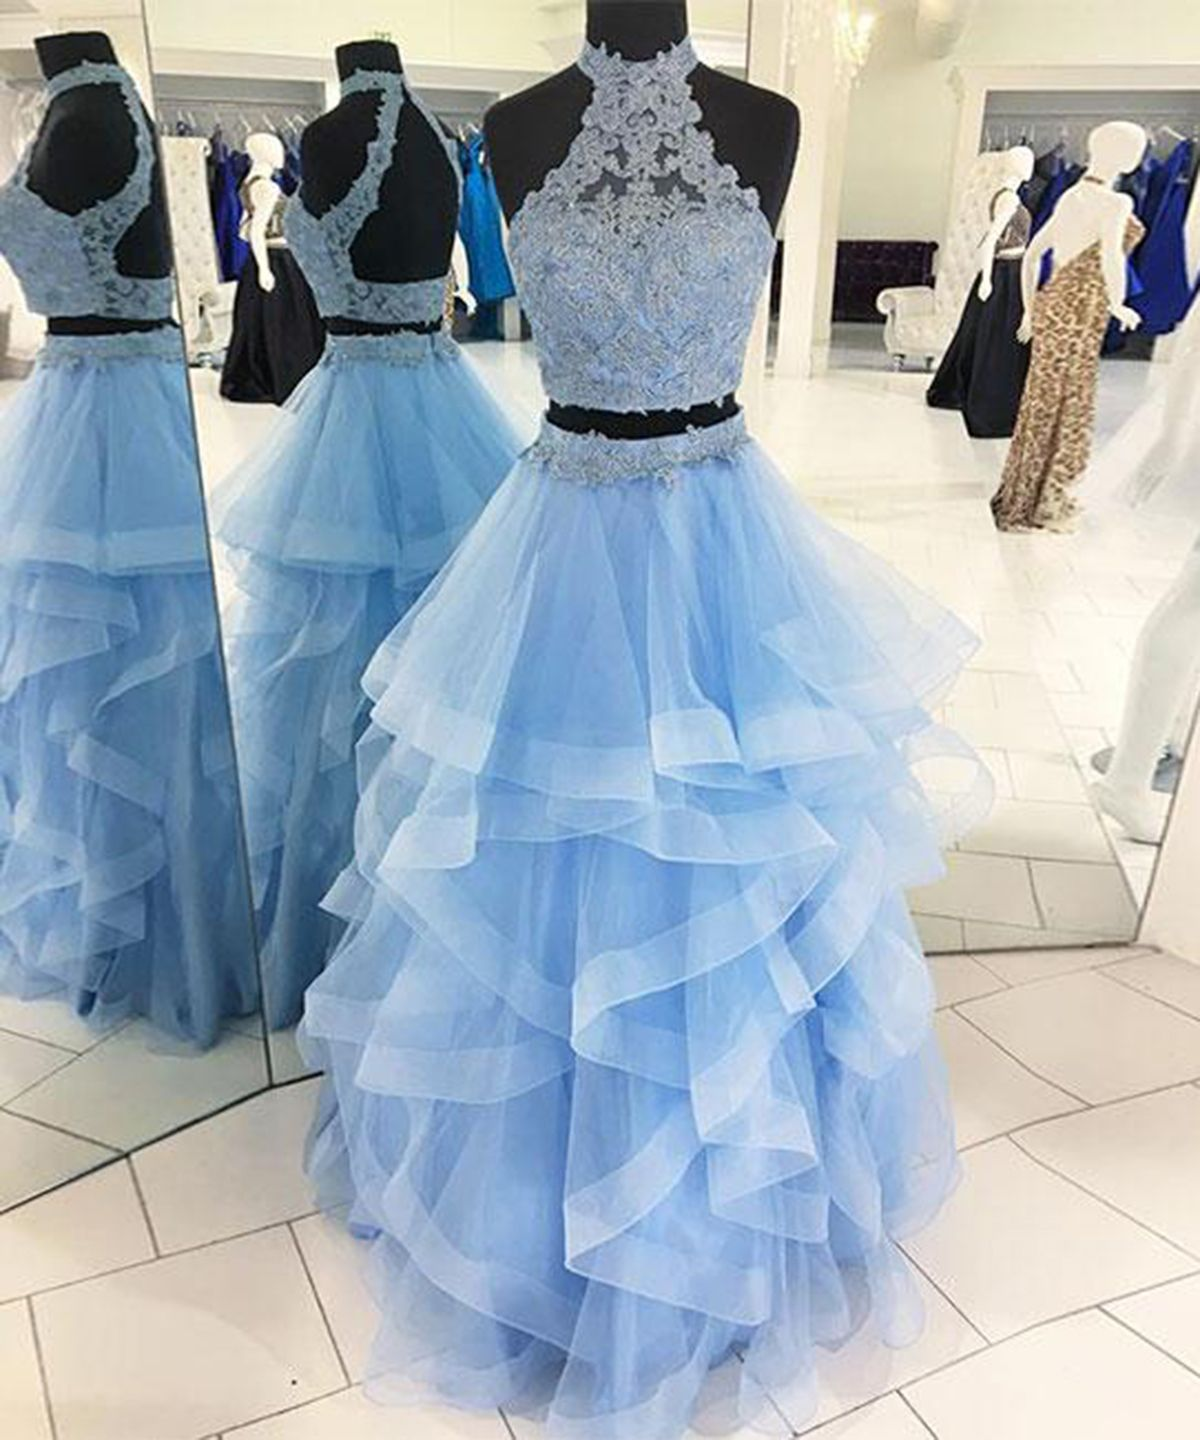 Ice blue tulle two pieces open back long ruffles evening dress, long lace party dress from Sweetheart Dress - Custom made prom dress, Prom dresses lace, Prom dresses for teens, Backless prom dresses, Prom dresses two piece, Piece prom dress - Handmade item Materials Organza Made to order Color refer to image Processing time1525 business days Delivery date510 business days Dress codeE0211 Fabric Organza Embellishment Lace Straps Strapless Sleeves Sleeveless Silhouette Aline Neckline O neck Hemline Floor le